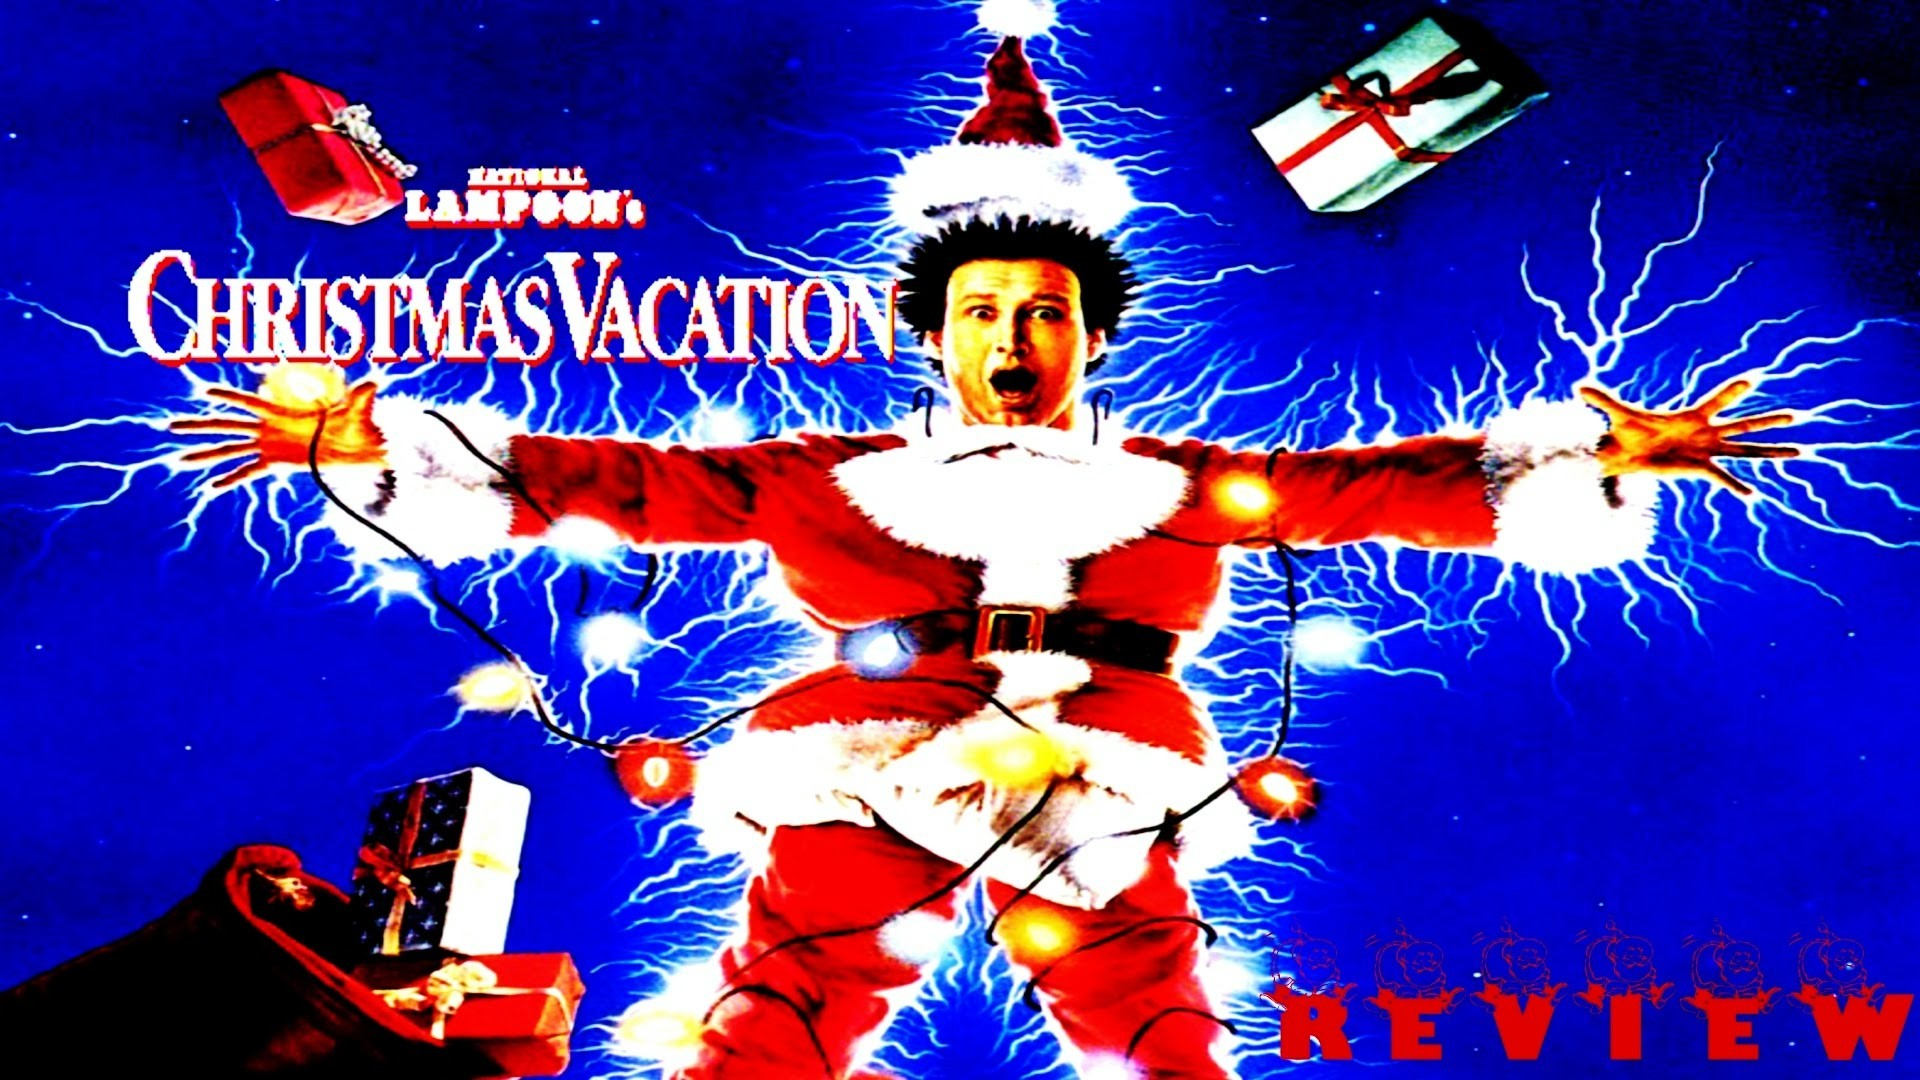 National Lampoon's Christmas Vacation (1989) MOVIE REVIEW!!!